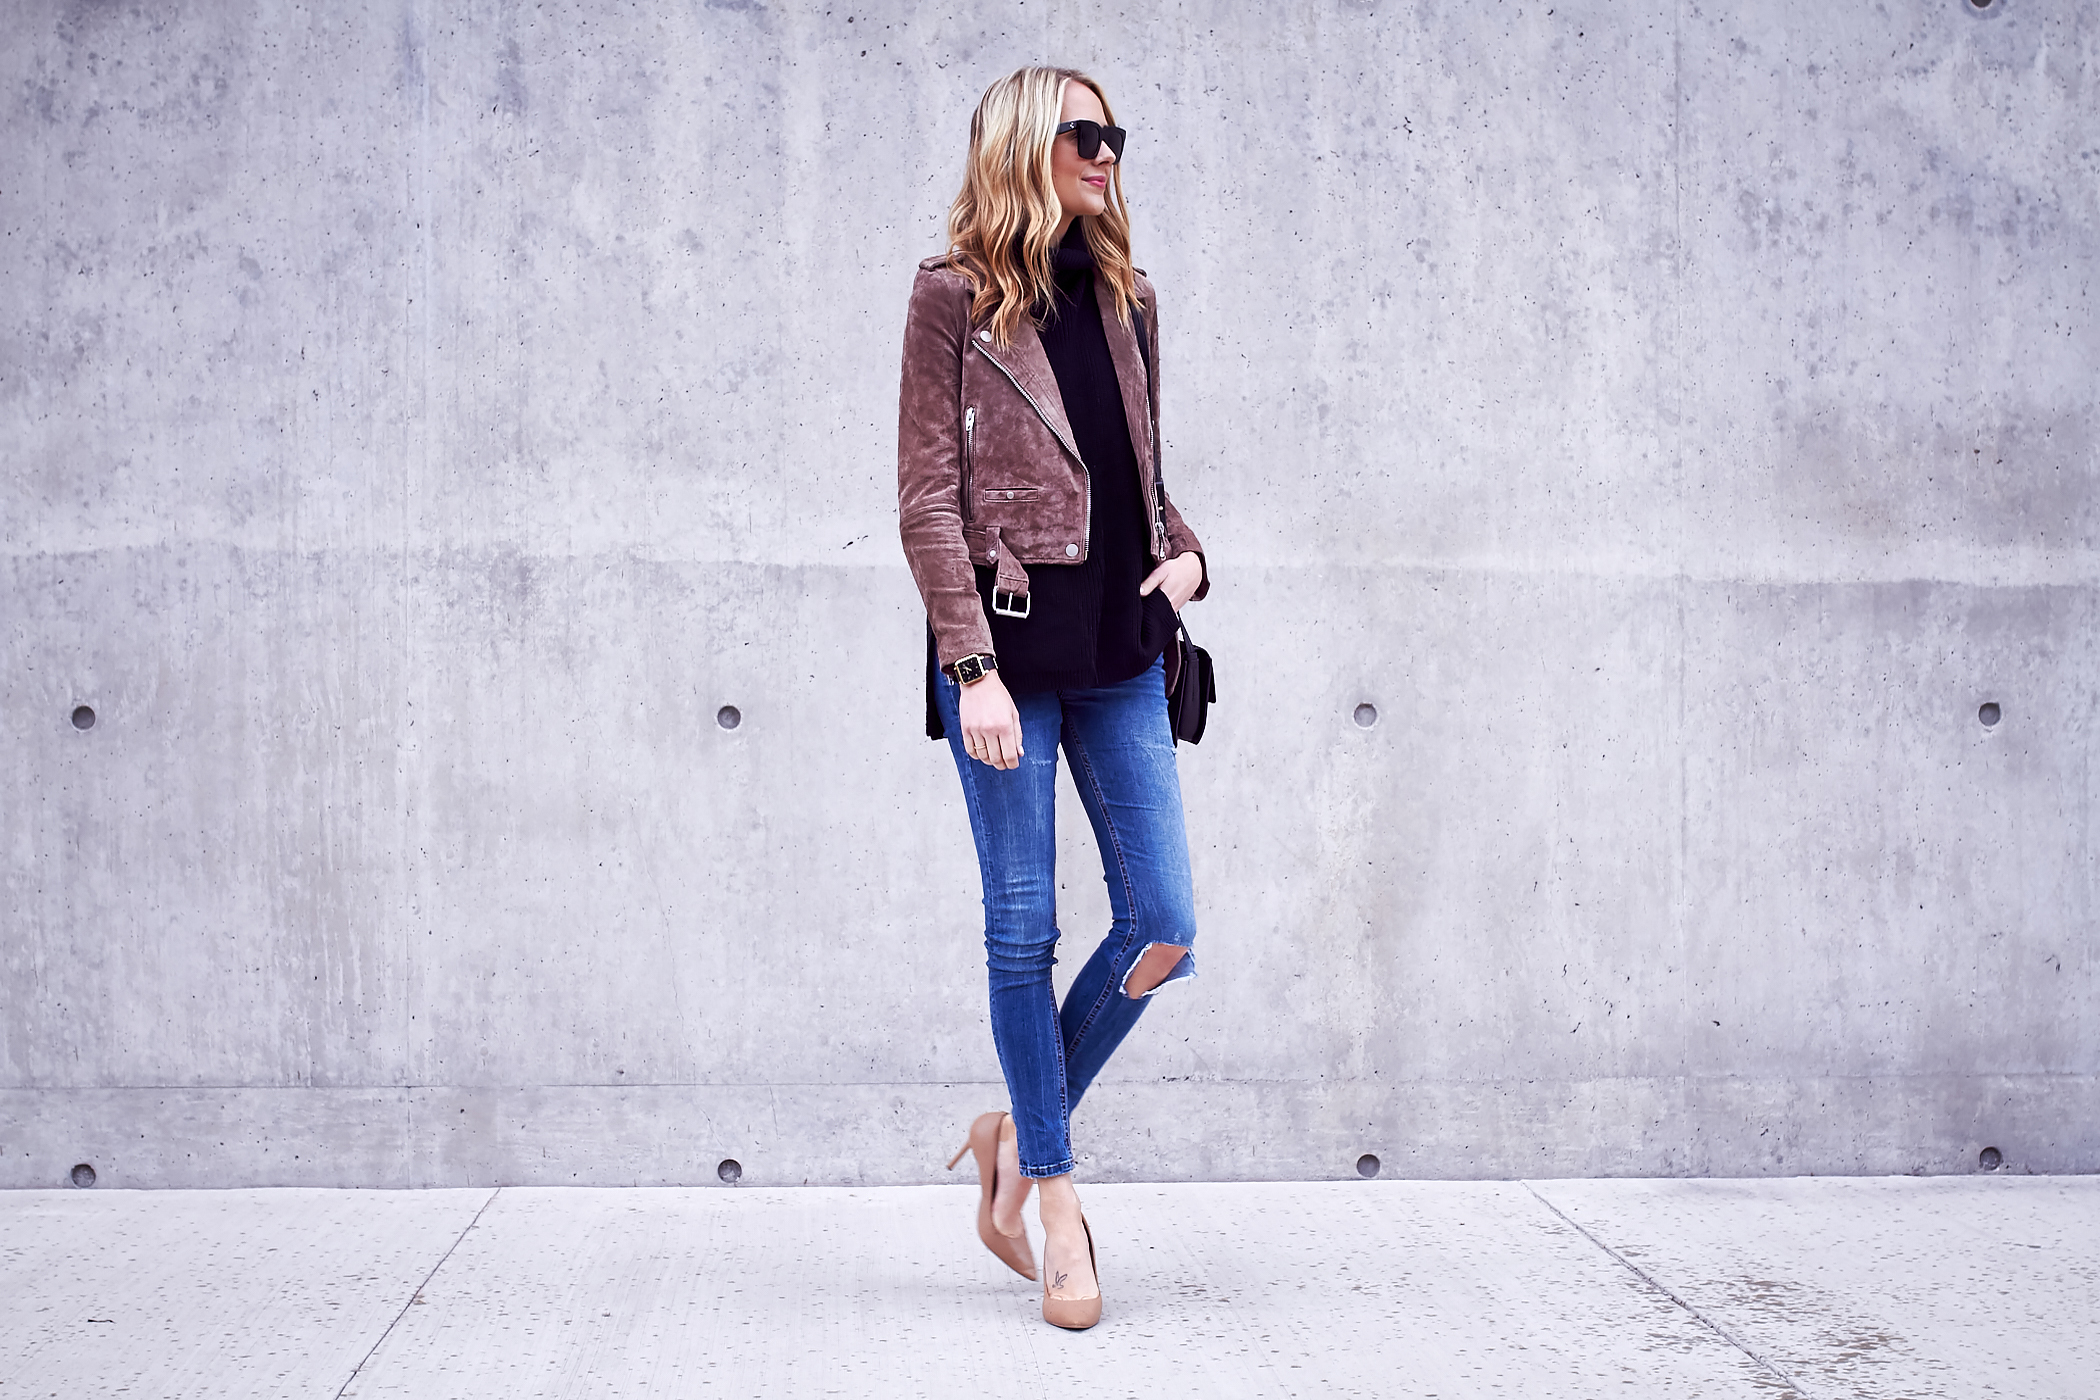 fashion-jackson-blanknyc-morning-suede-moto-jacket-black-turtleneck-sweater-ripped-denim-jeans-nude-pumps-black-sunglasses